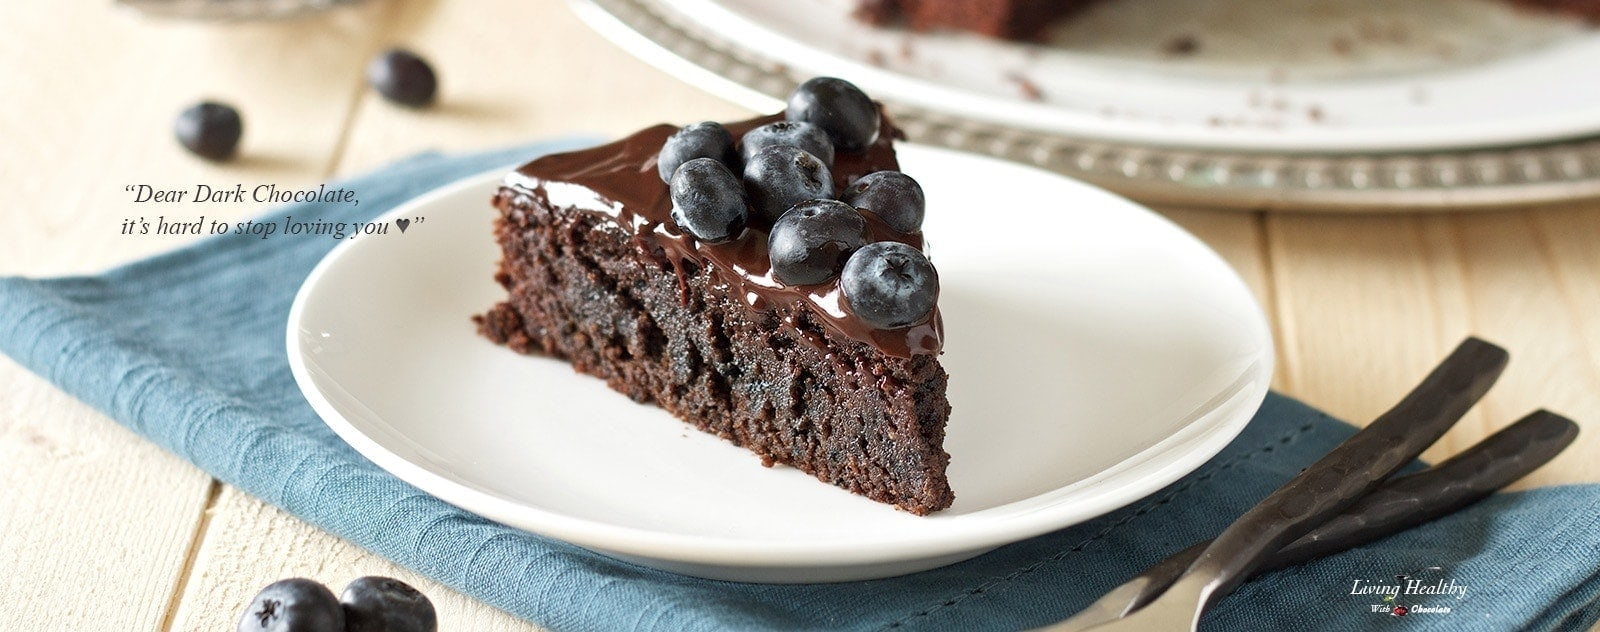 Chocolate cake with blueberries on top on a white plate